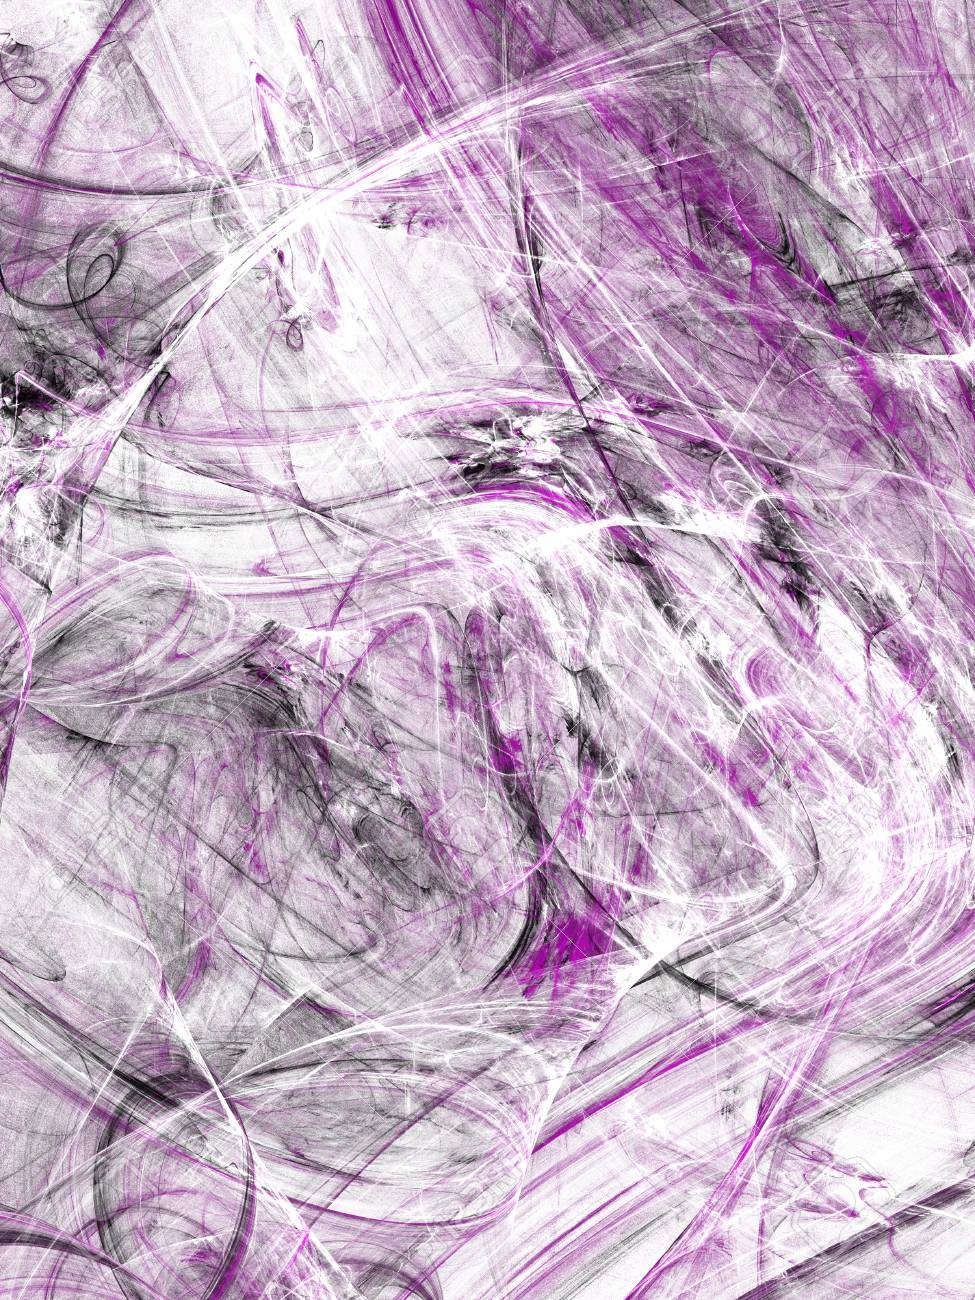 Grunge abstract black and purple background on white backdrop three colors rectangular vertical shape